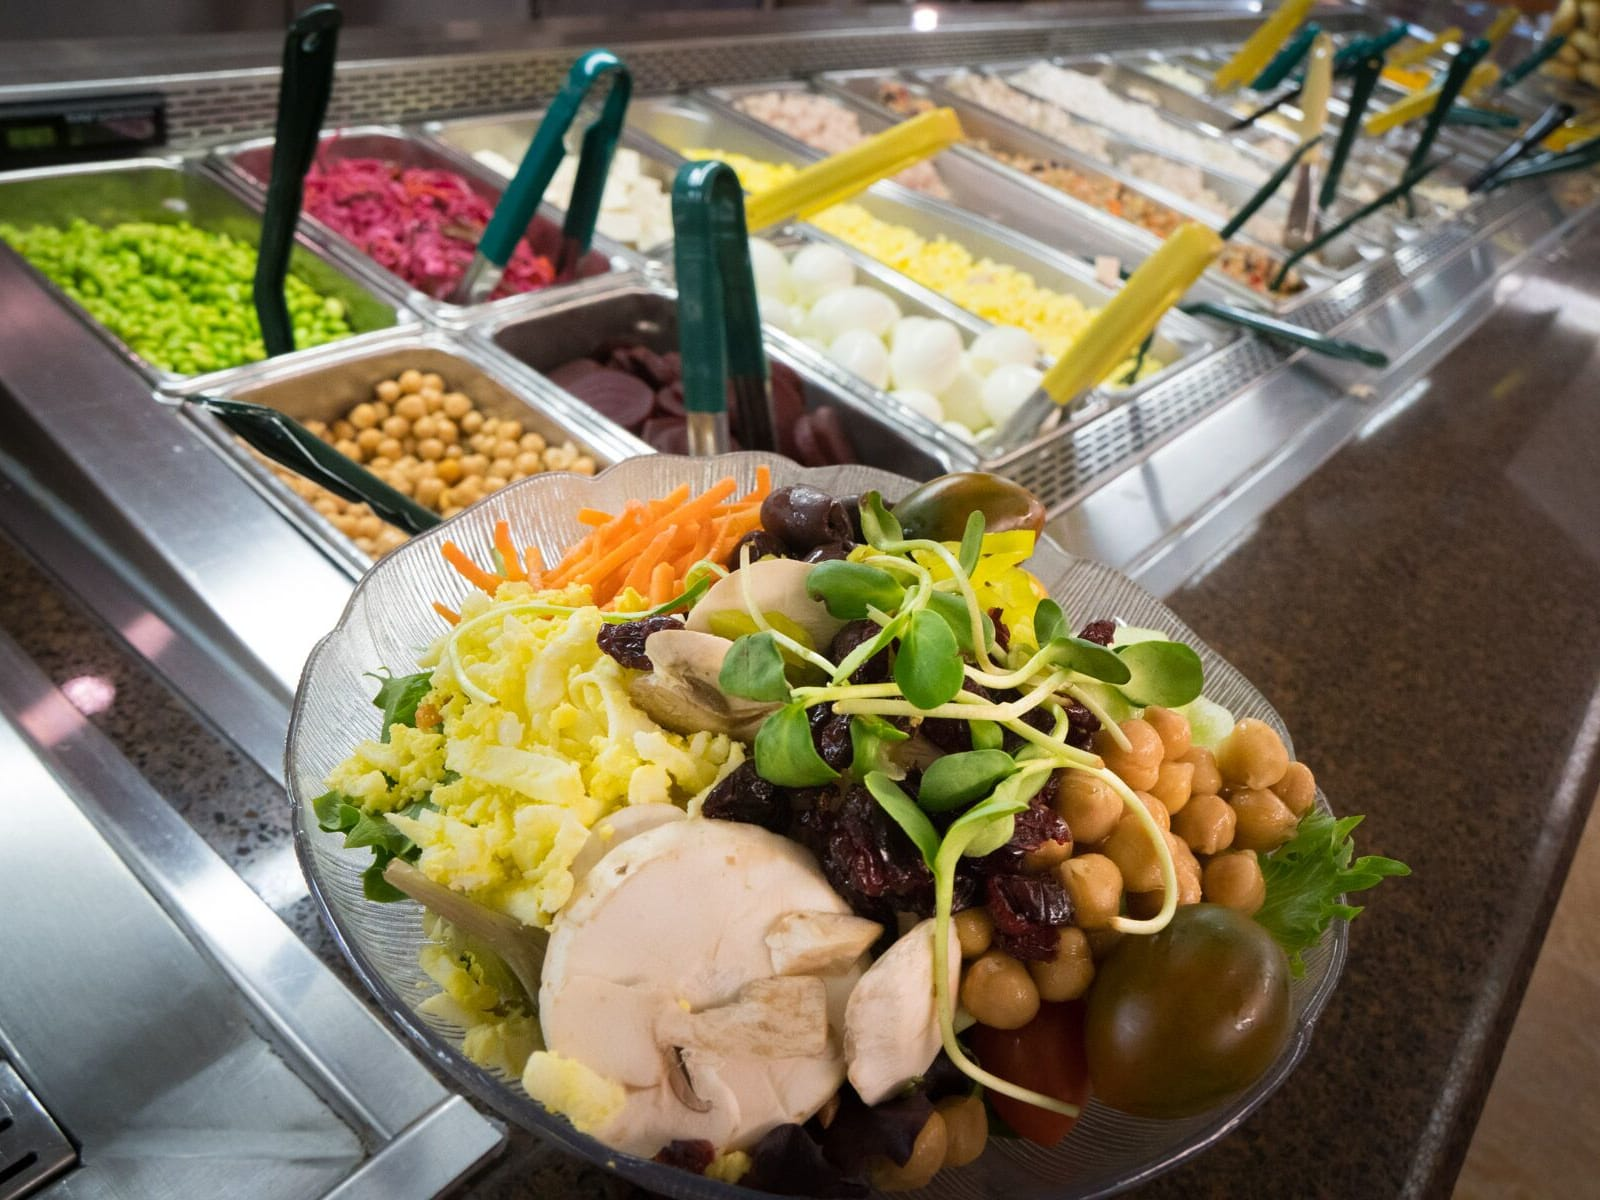 Image of a salad bar